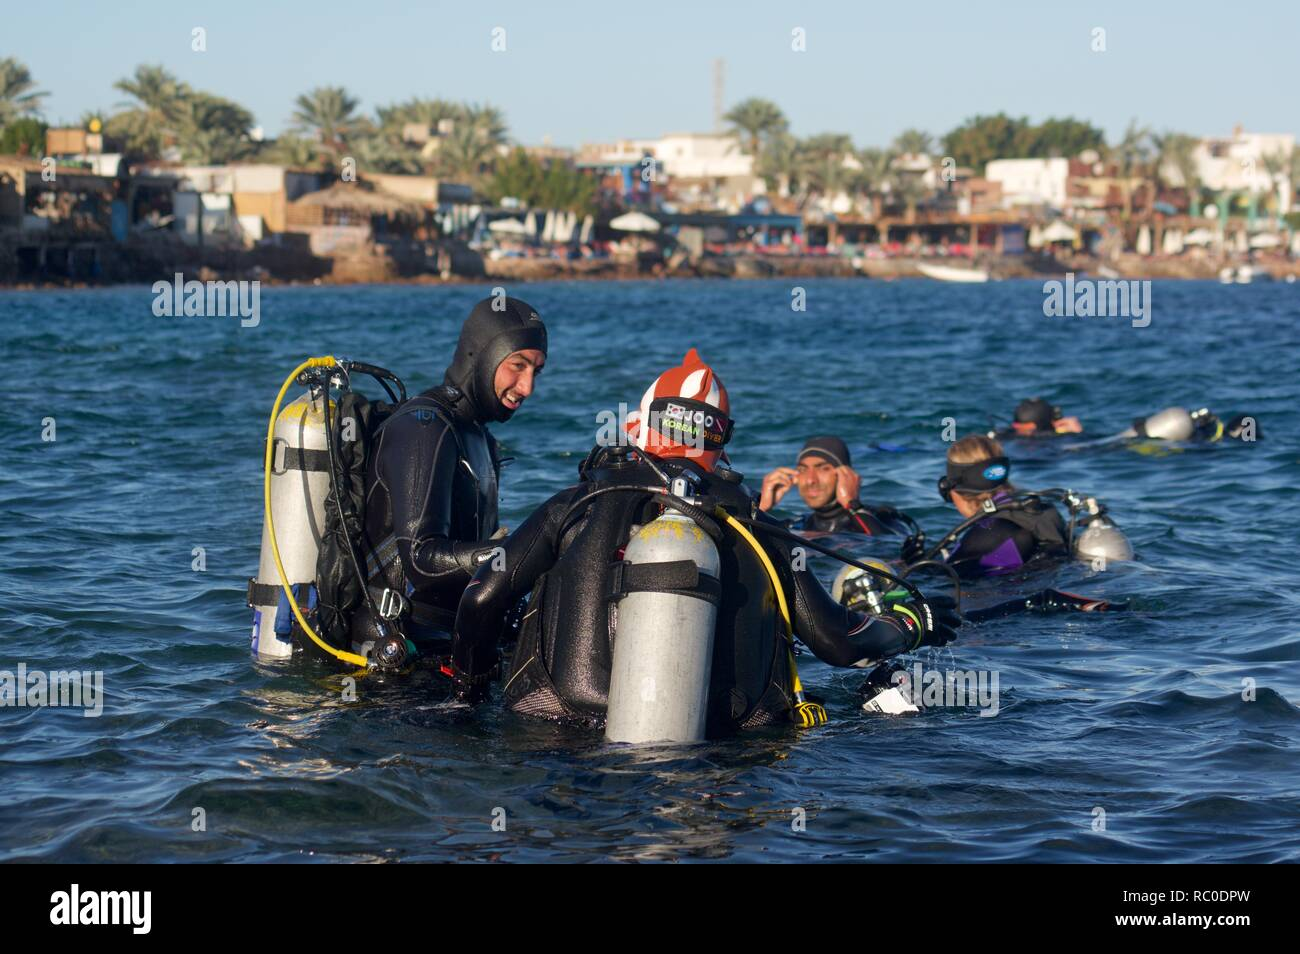 Diiving lessons in Dahab, Egypt - Stock Image